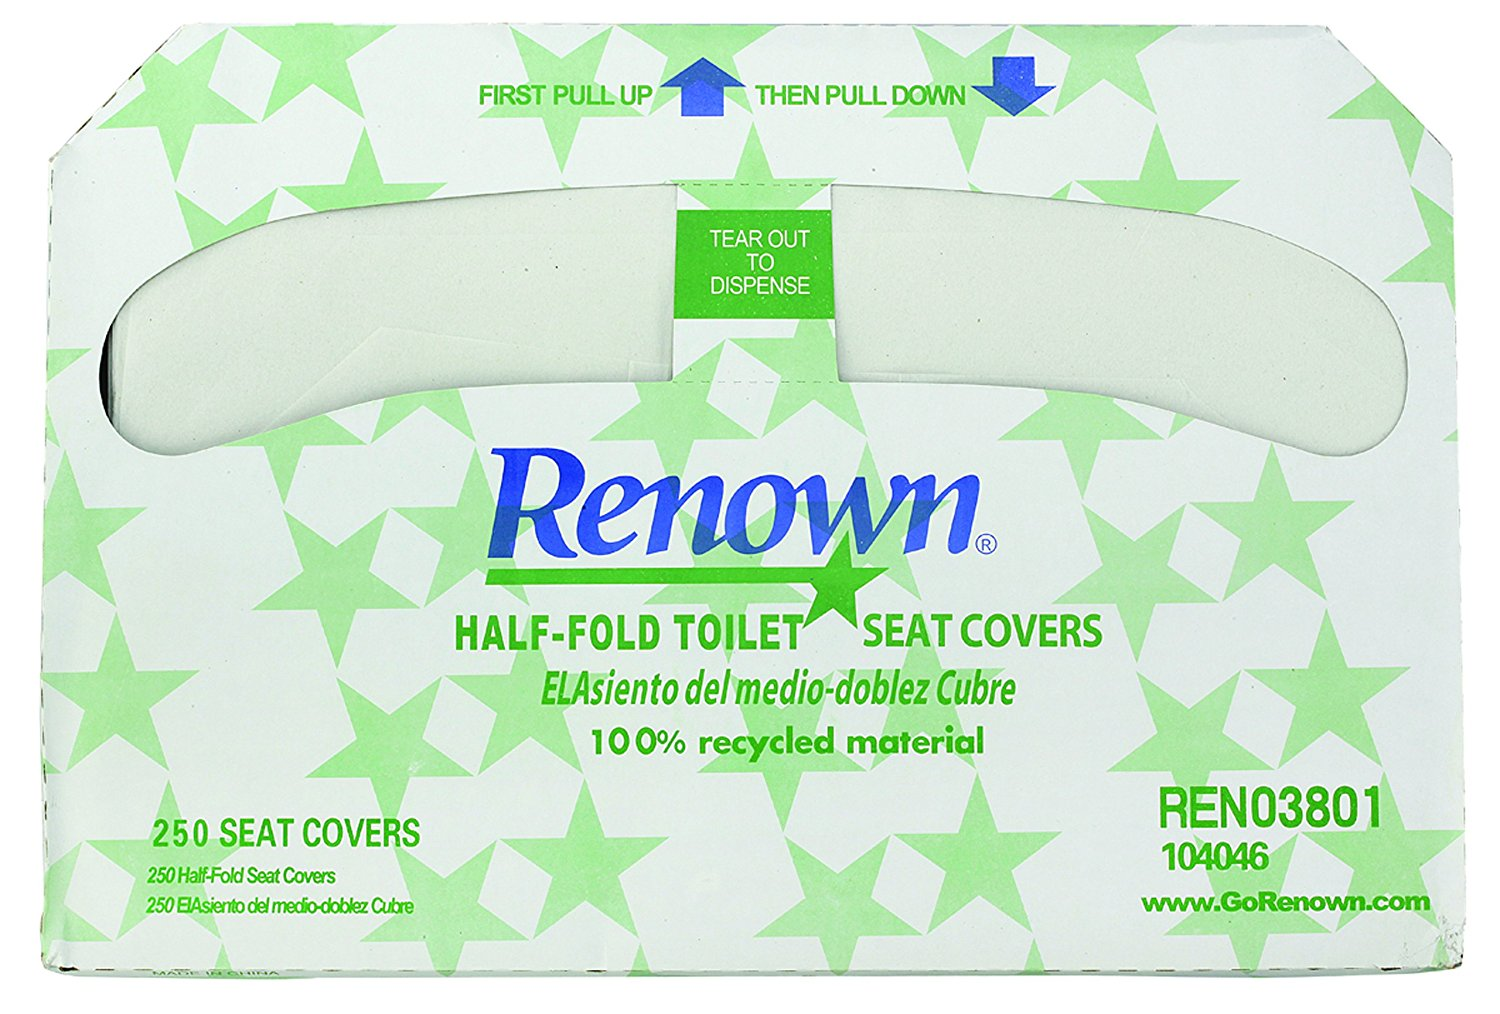 RENOWN� HALF-FOLD TOILET SEAT COVERS, EPA-APPROVED, 250 COVERS PER BOX